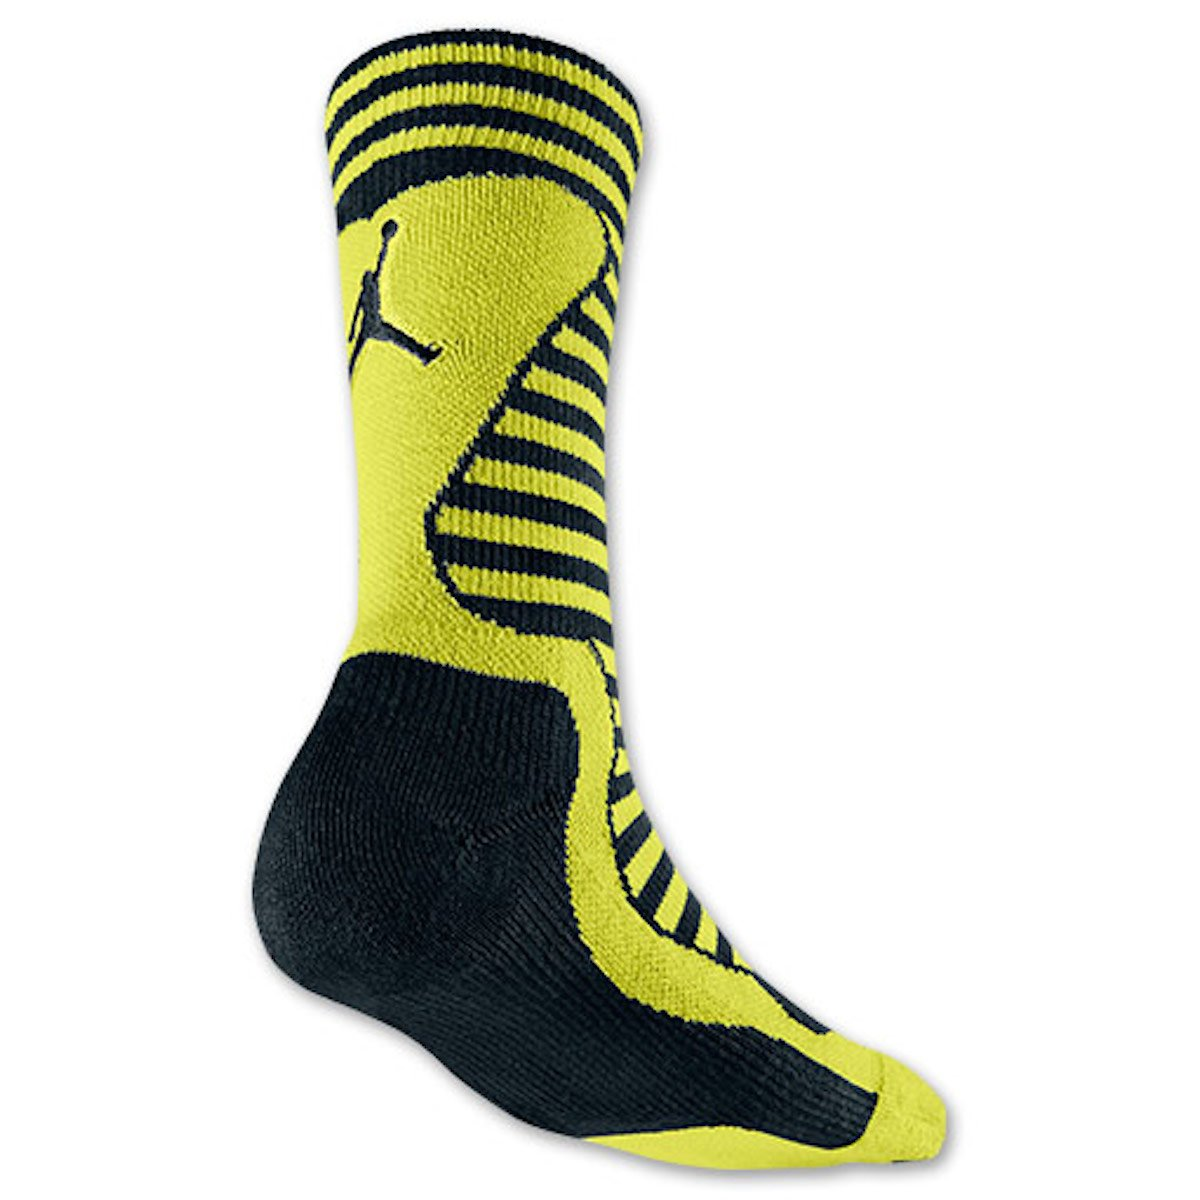 Amazon.com: [589046-013] AIR Jordan X Sneaker Socks Apparel Apparel AIR JORDANGREEN/Black: Sports & Outdoors